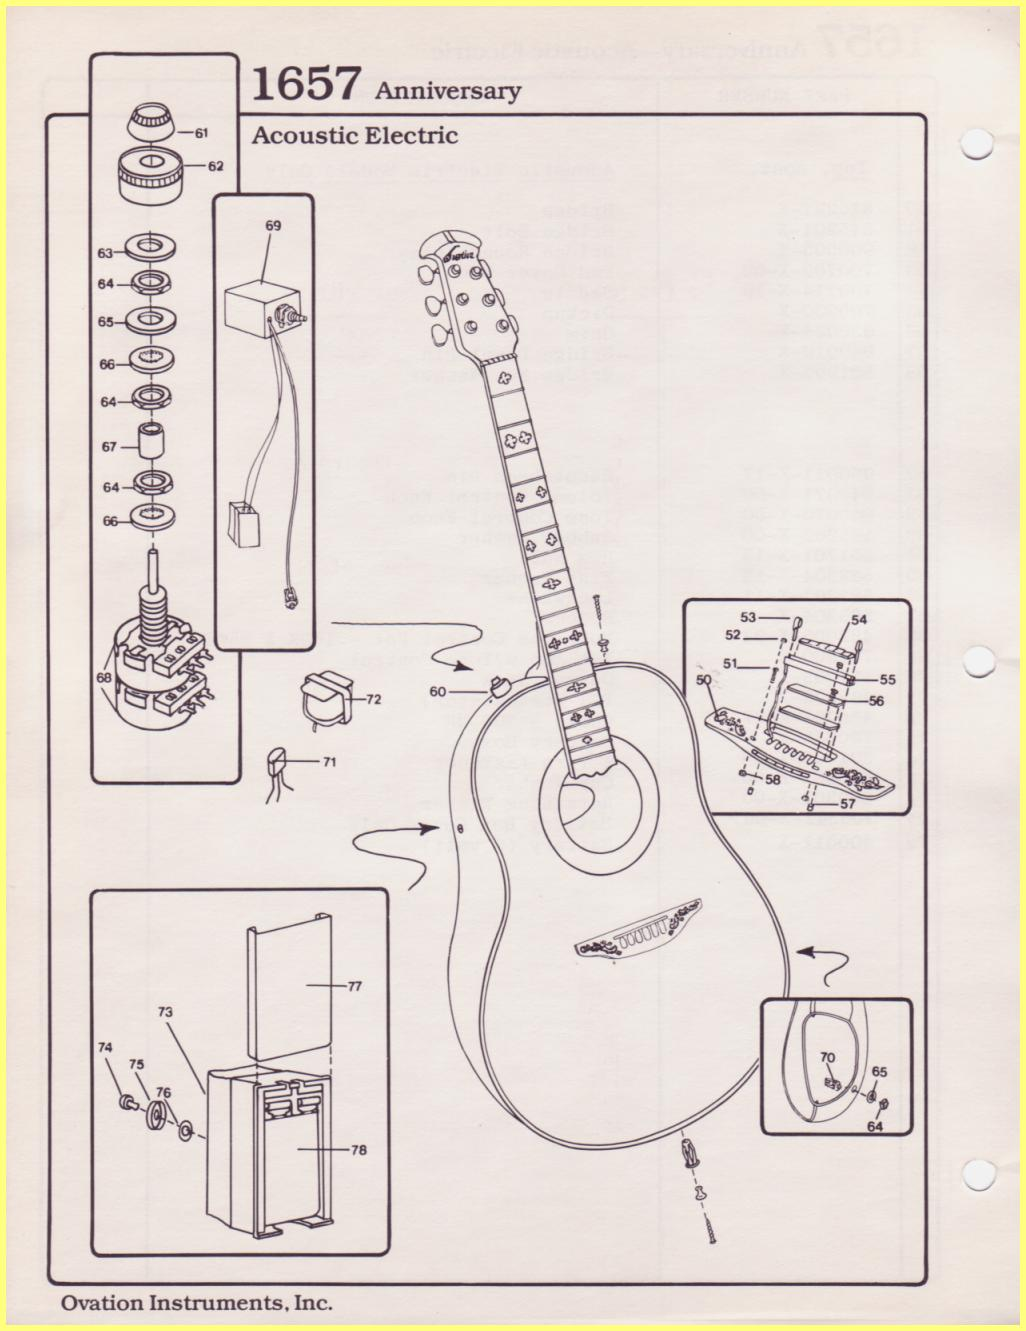 Ovation Parts Catalog Electric Guitar Diagram Of The Anniversary